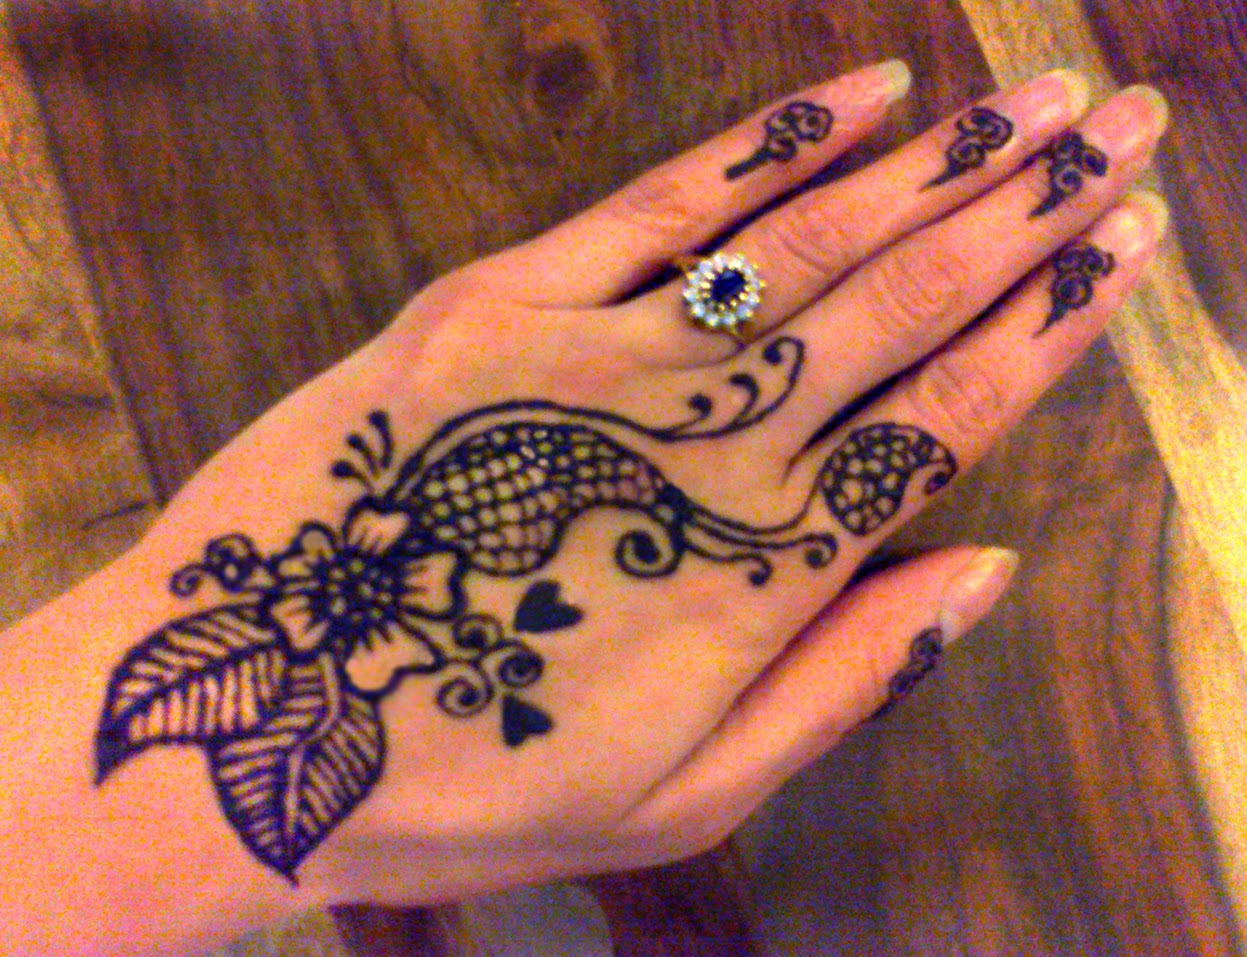 Henna Tattoo Designs For Diwali: Monsoon Arts And Photography: Henna And Diwali Day Celebration